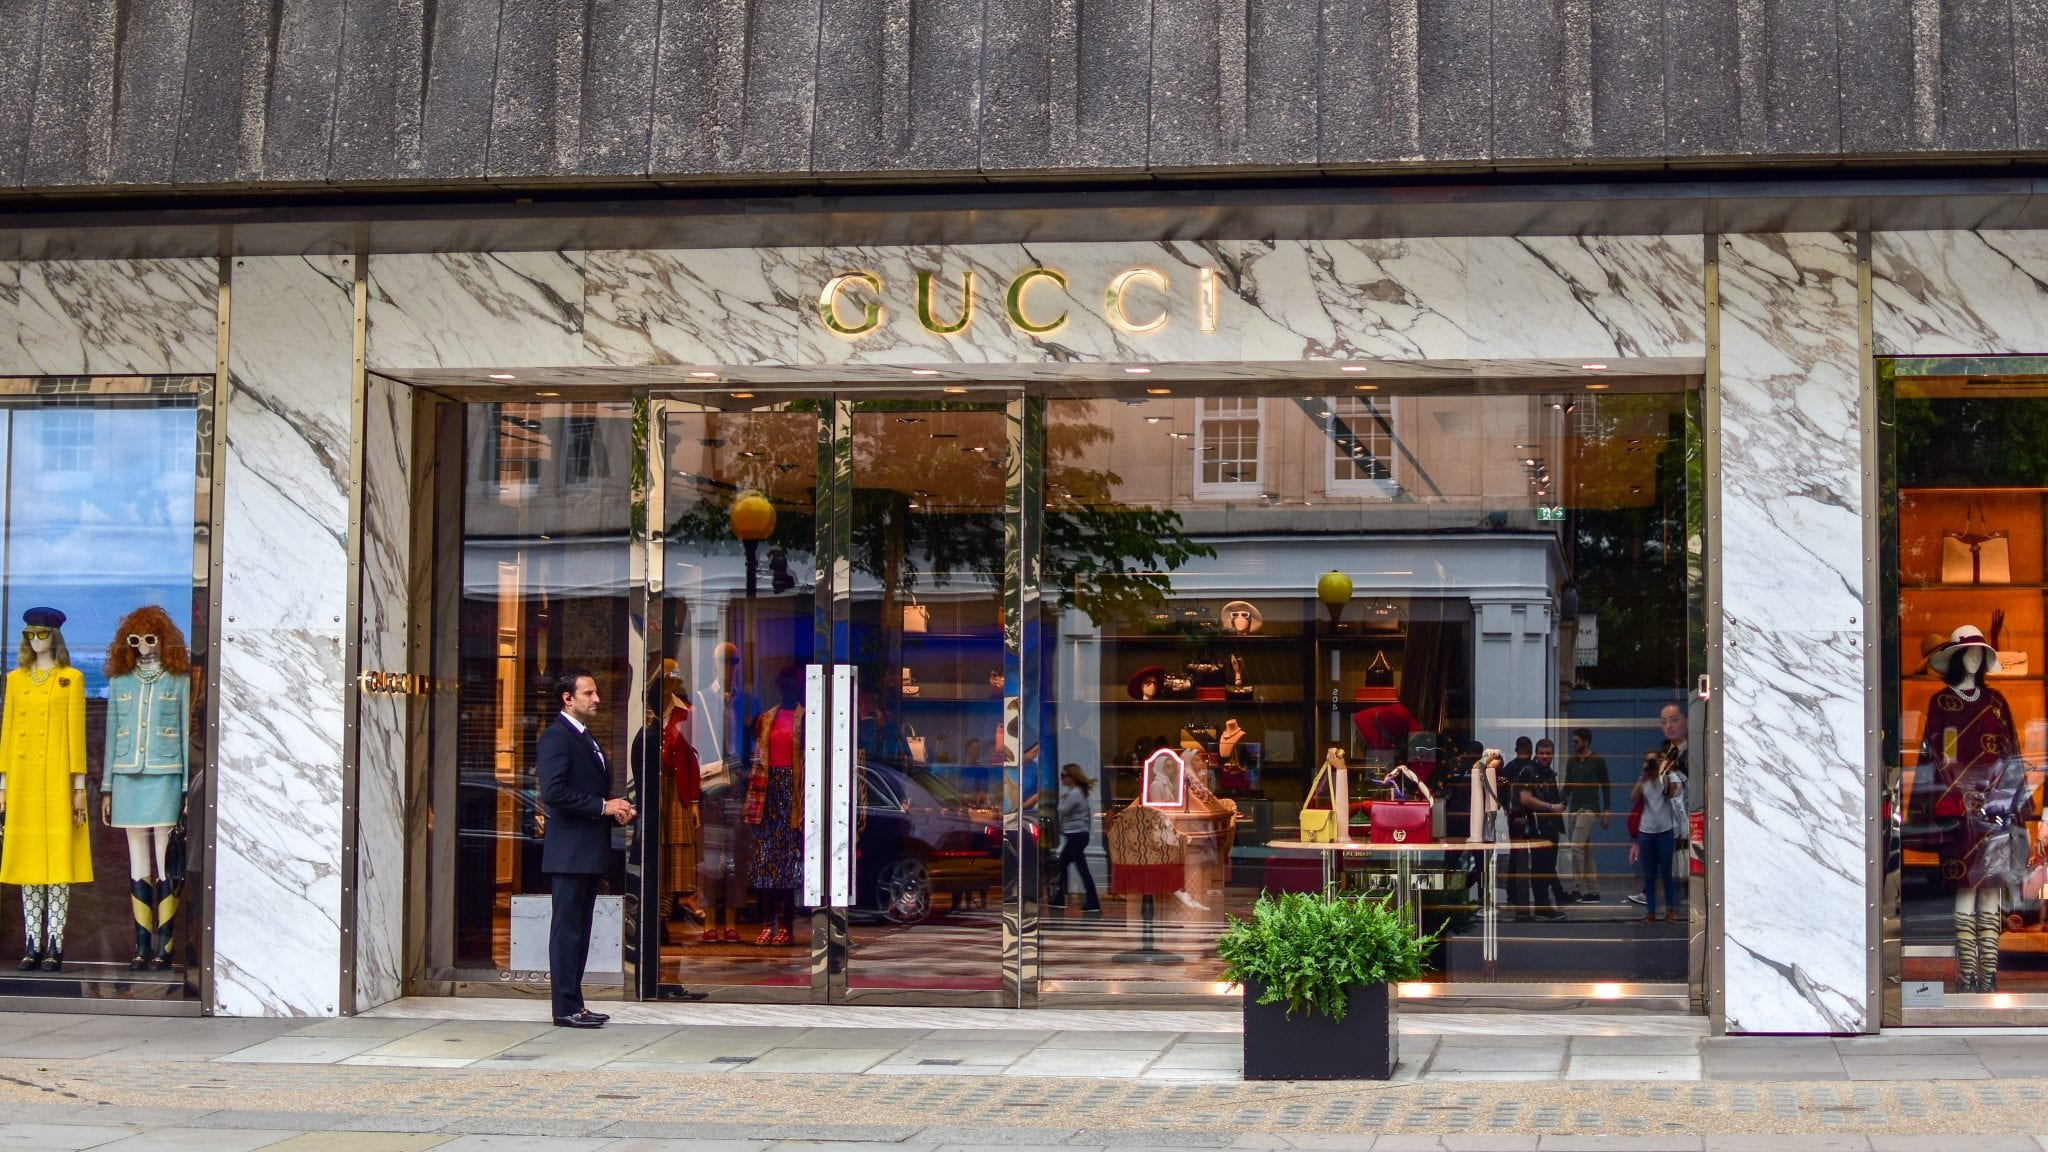 Outside Gucci's flagship store in sloane street. Large bespoke fully glazed Warrior Doors and shopfront with a security guard on duty.